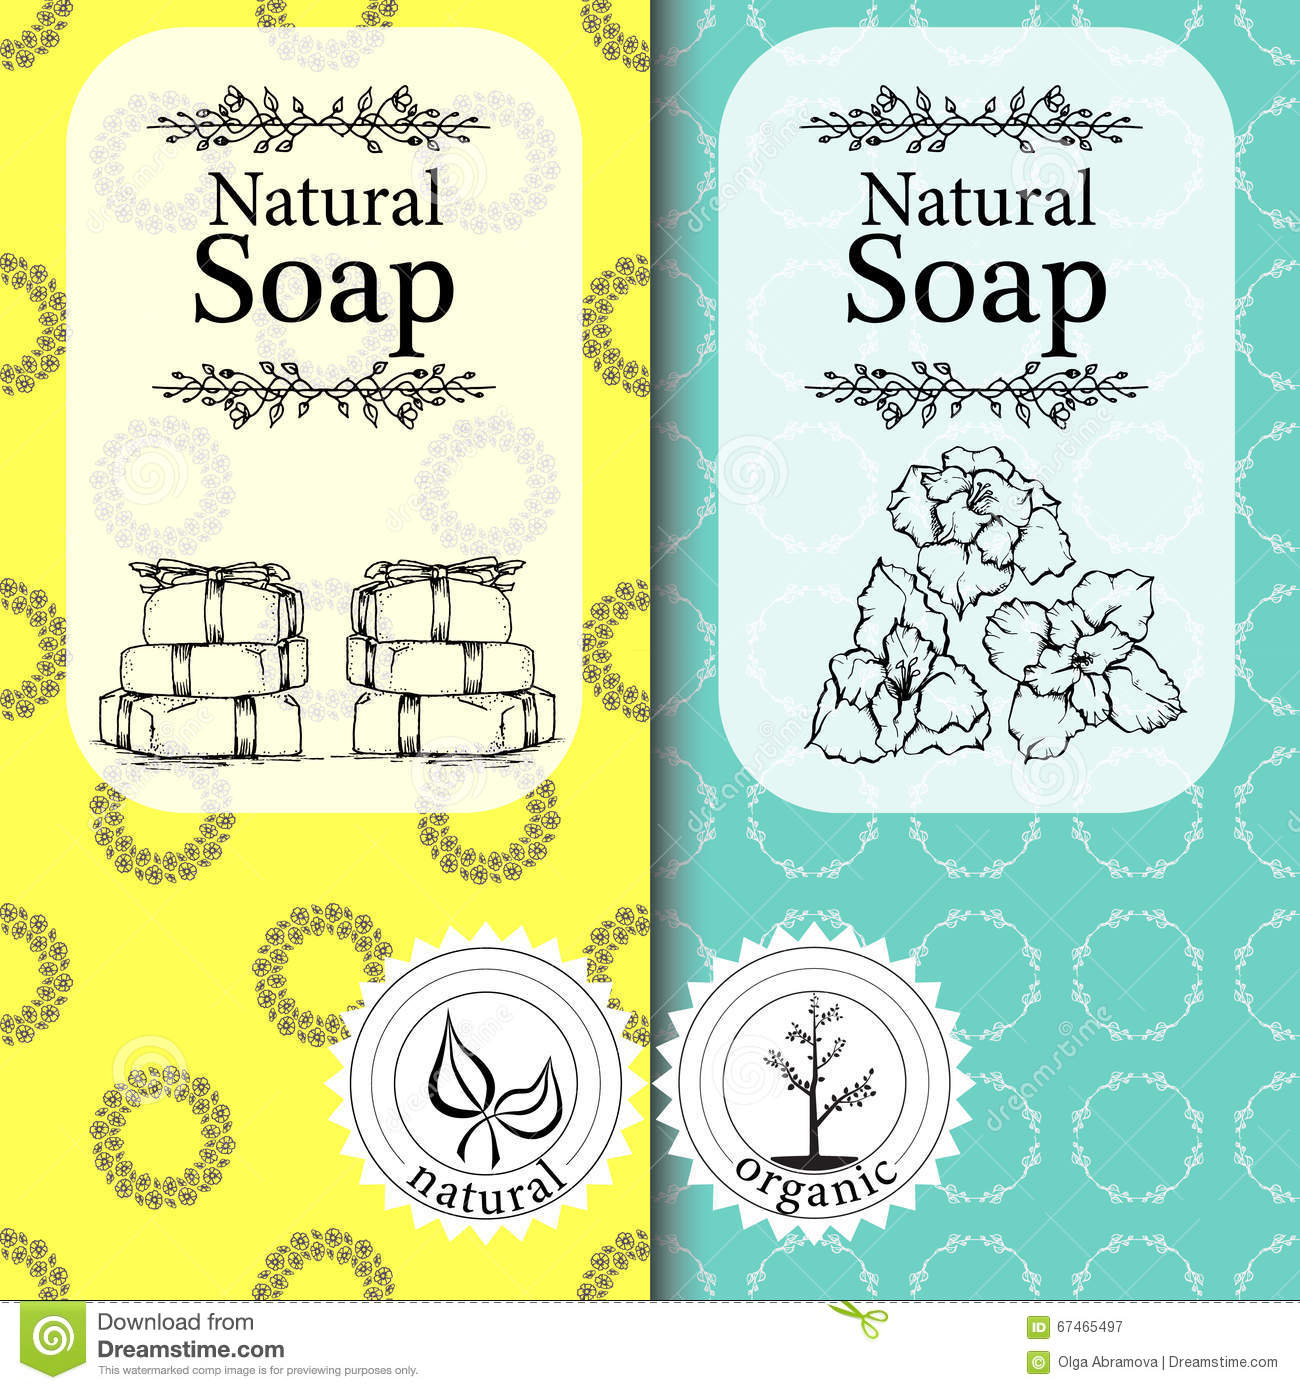 graphic regarding Free Printable Soap Labels Template called totally free cleaning soap label models 5a8513advert93922afe97a94b513915f4a3